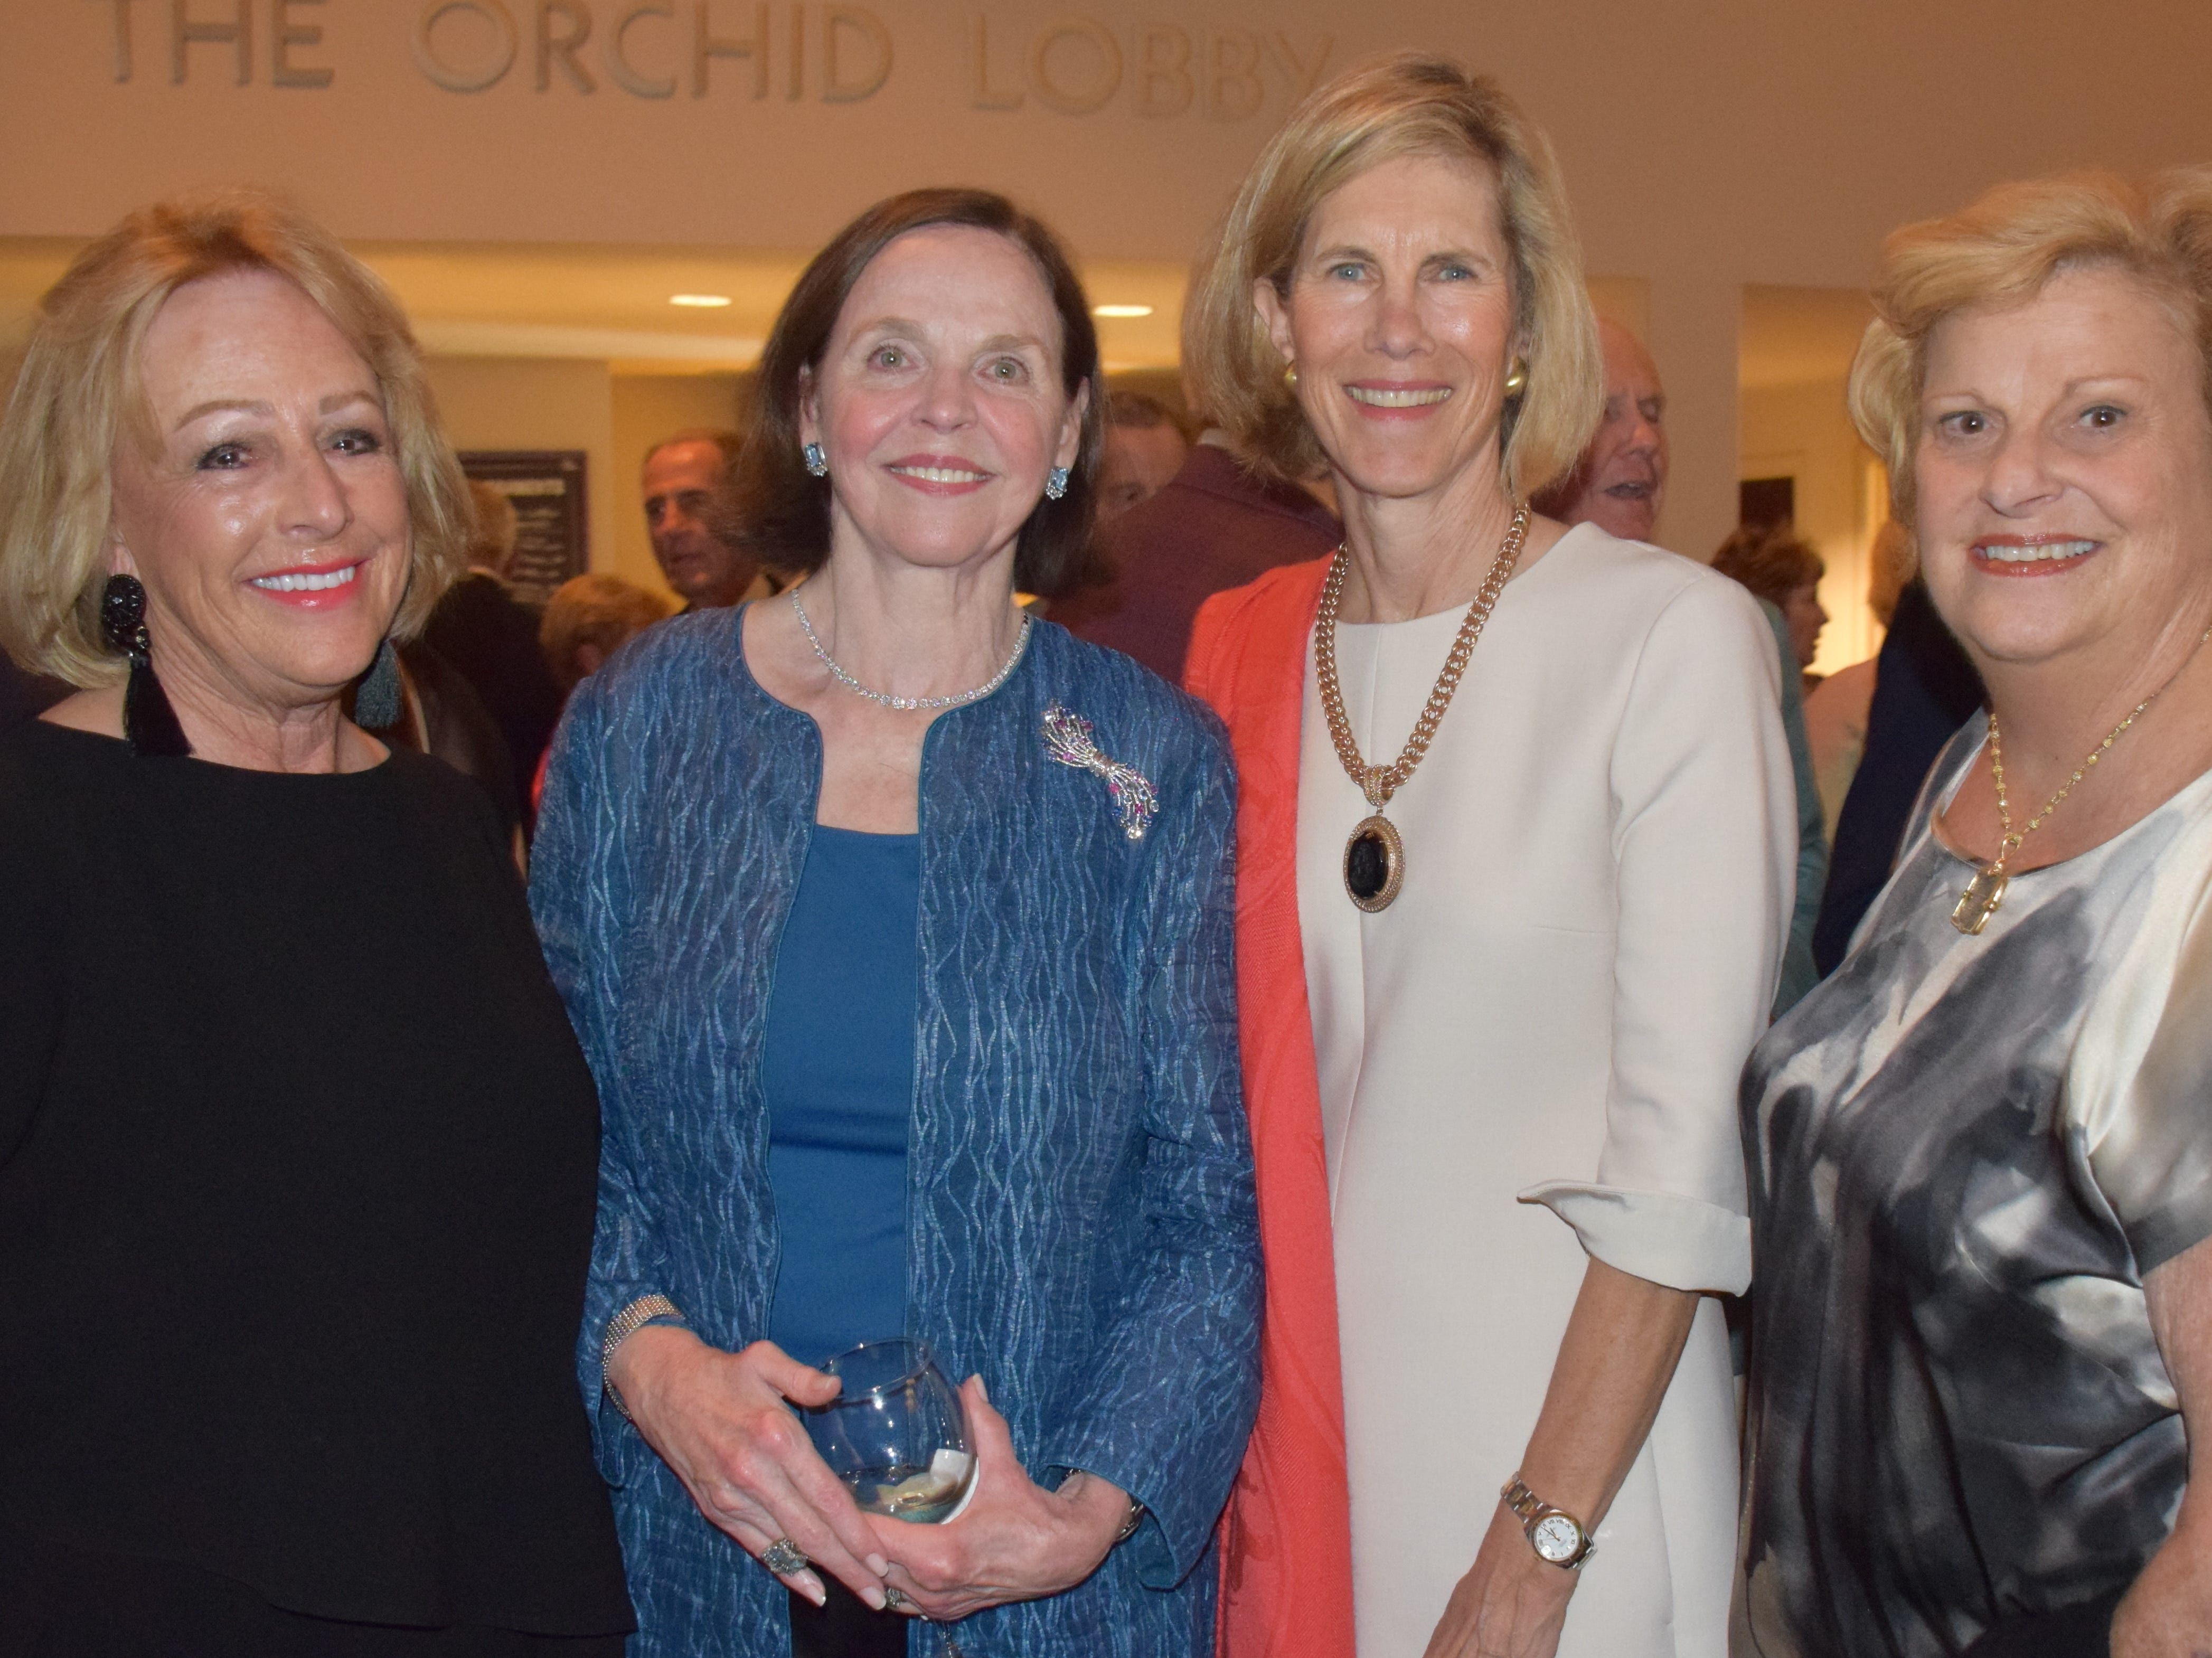 Nancy Rosner, Susan McCord, Debbie Berhorst and Jean Oglethorpe